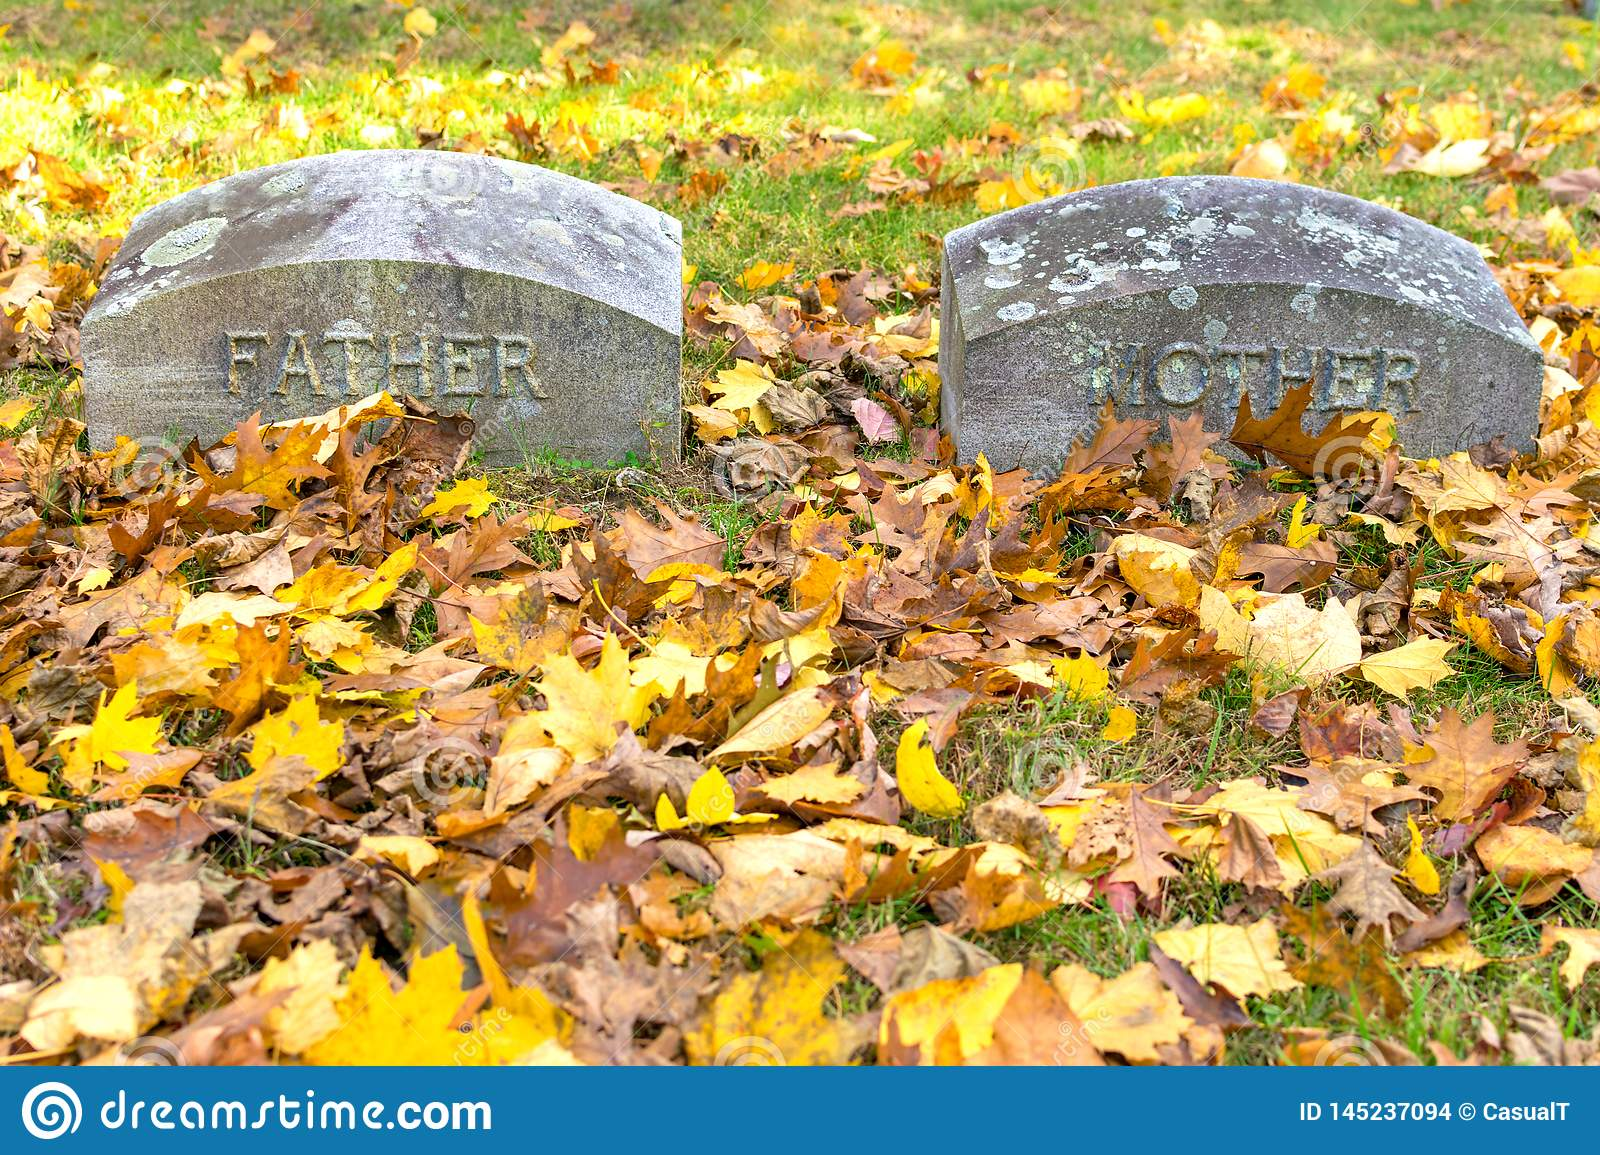 Two gravestones, inscribed with the words Father & Mother, amid green grass and fallen foliage on a sunny fall day in